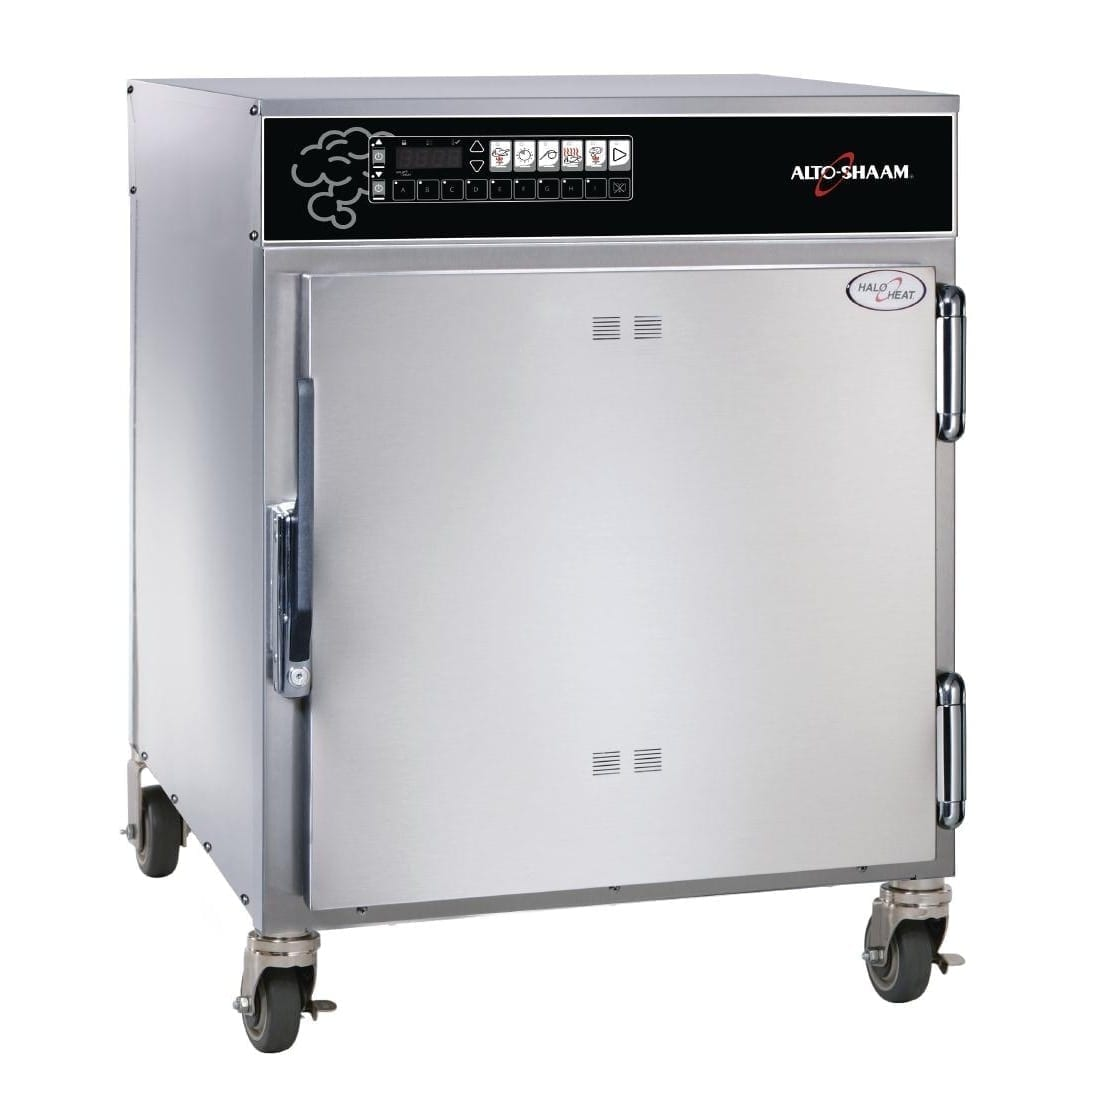 Alto Shaam Smoker Cook & Hold Oven 2 Shelves 3.1kw (Direct)-0